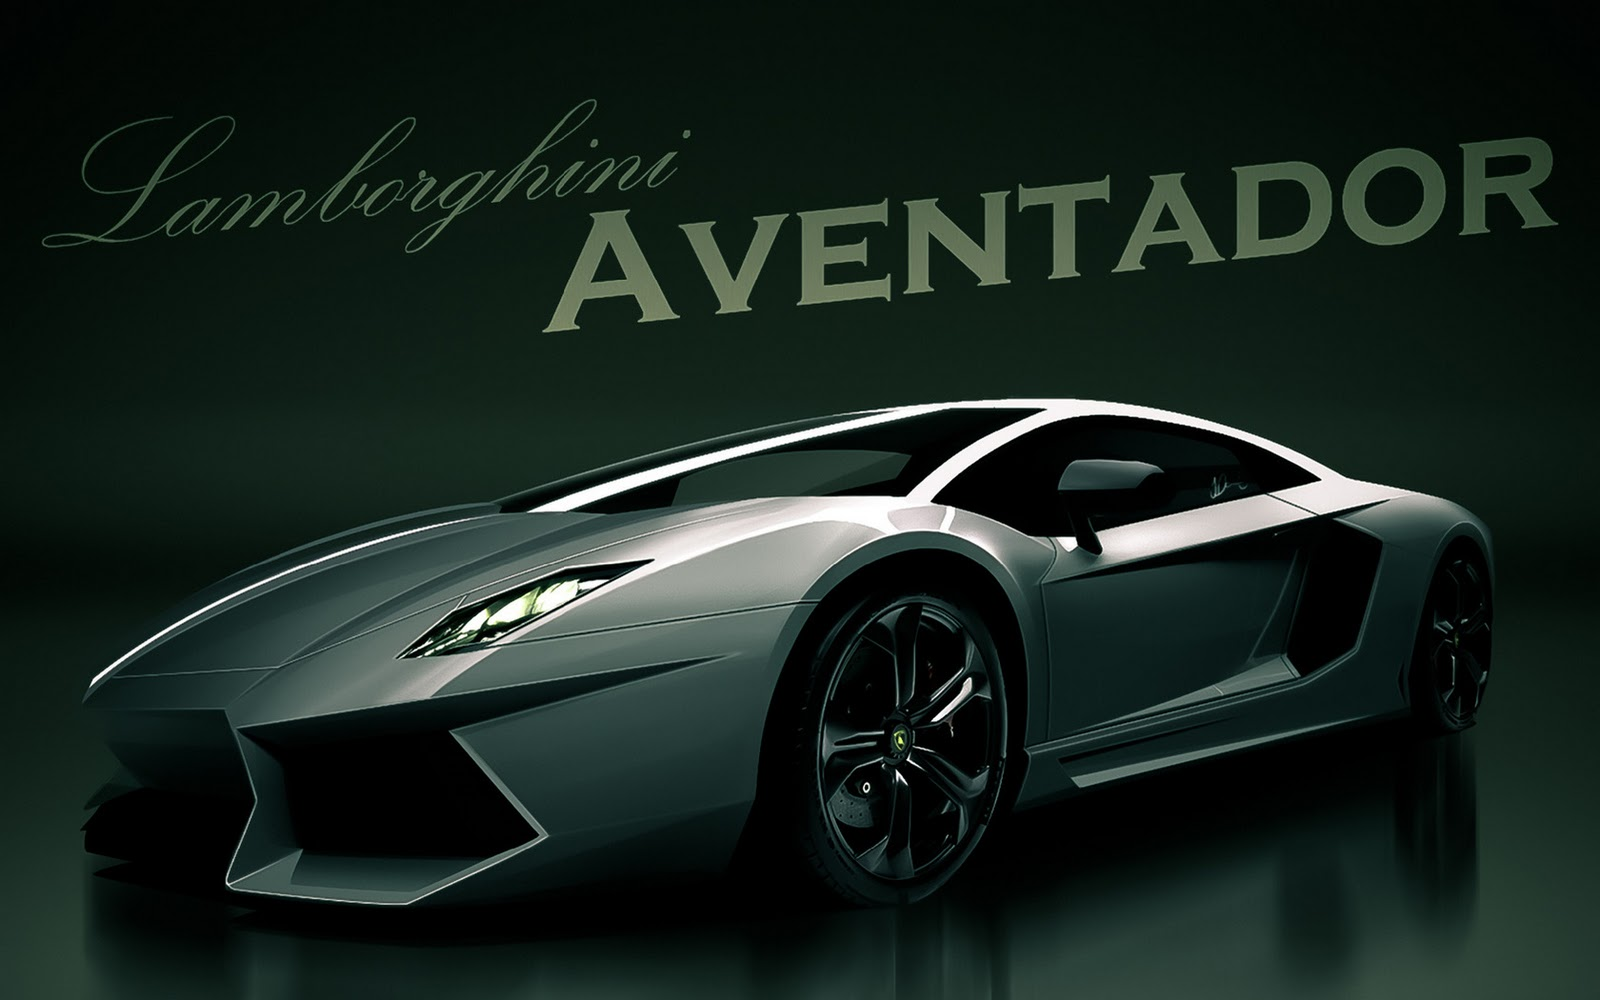 Lamborghini Cars WallpapersCool WallpapersFree WallpaperWhite WallpaperBlue WallpaperLamborghini